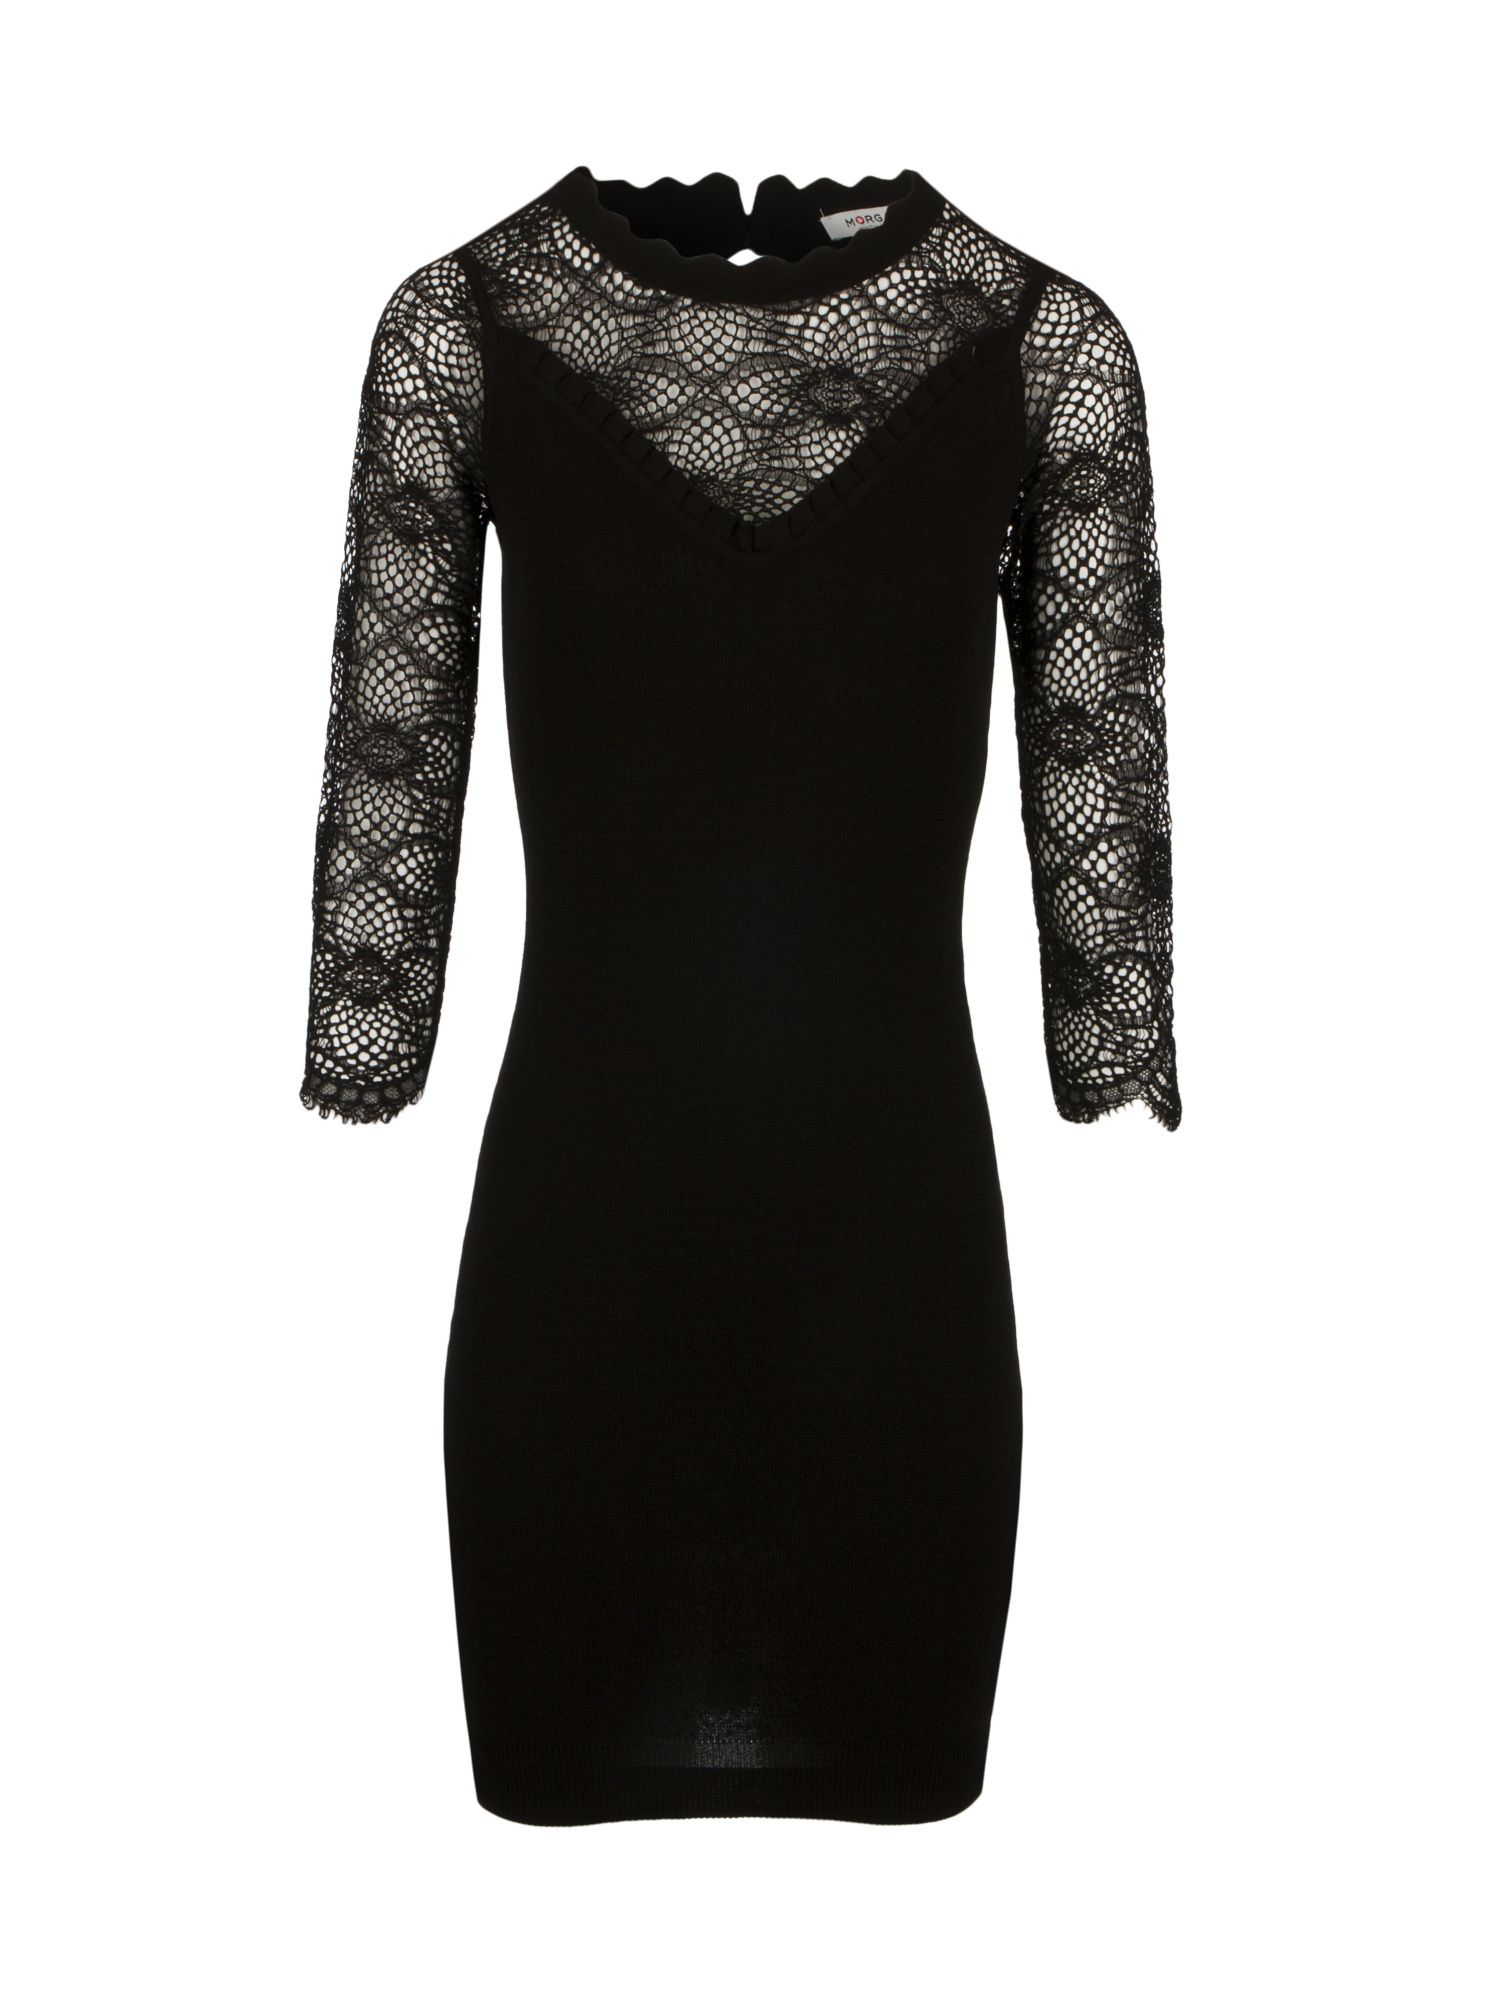 Morgan Bodycon Knit Dress With Mesh Effect, Black